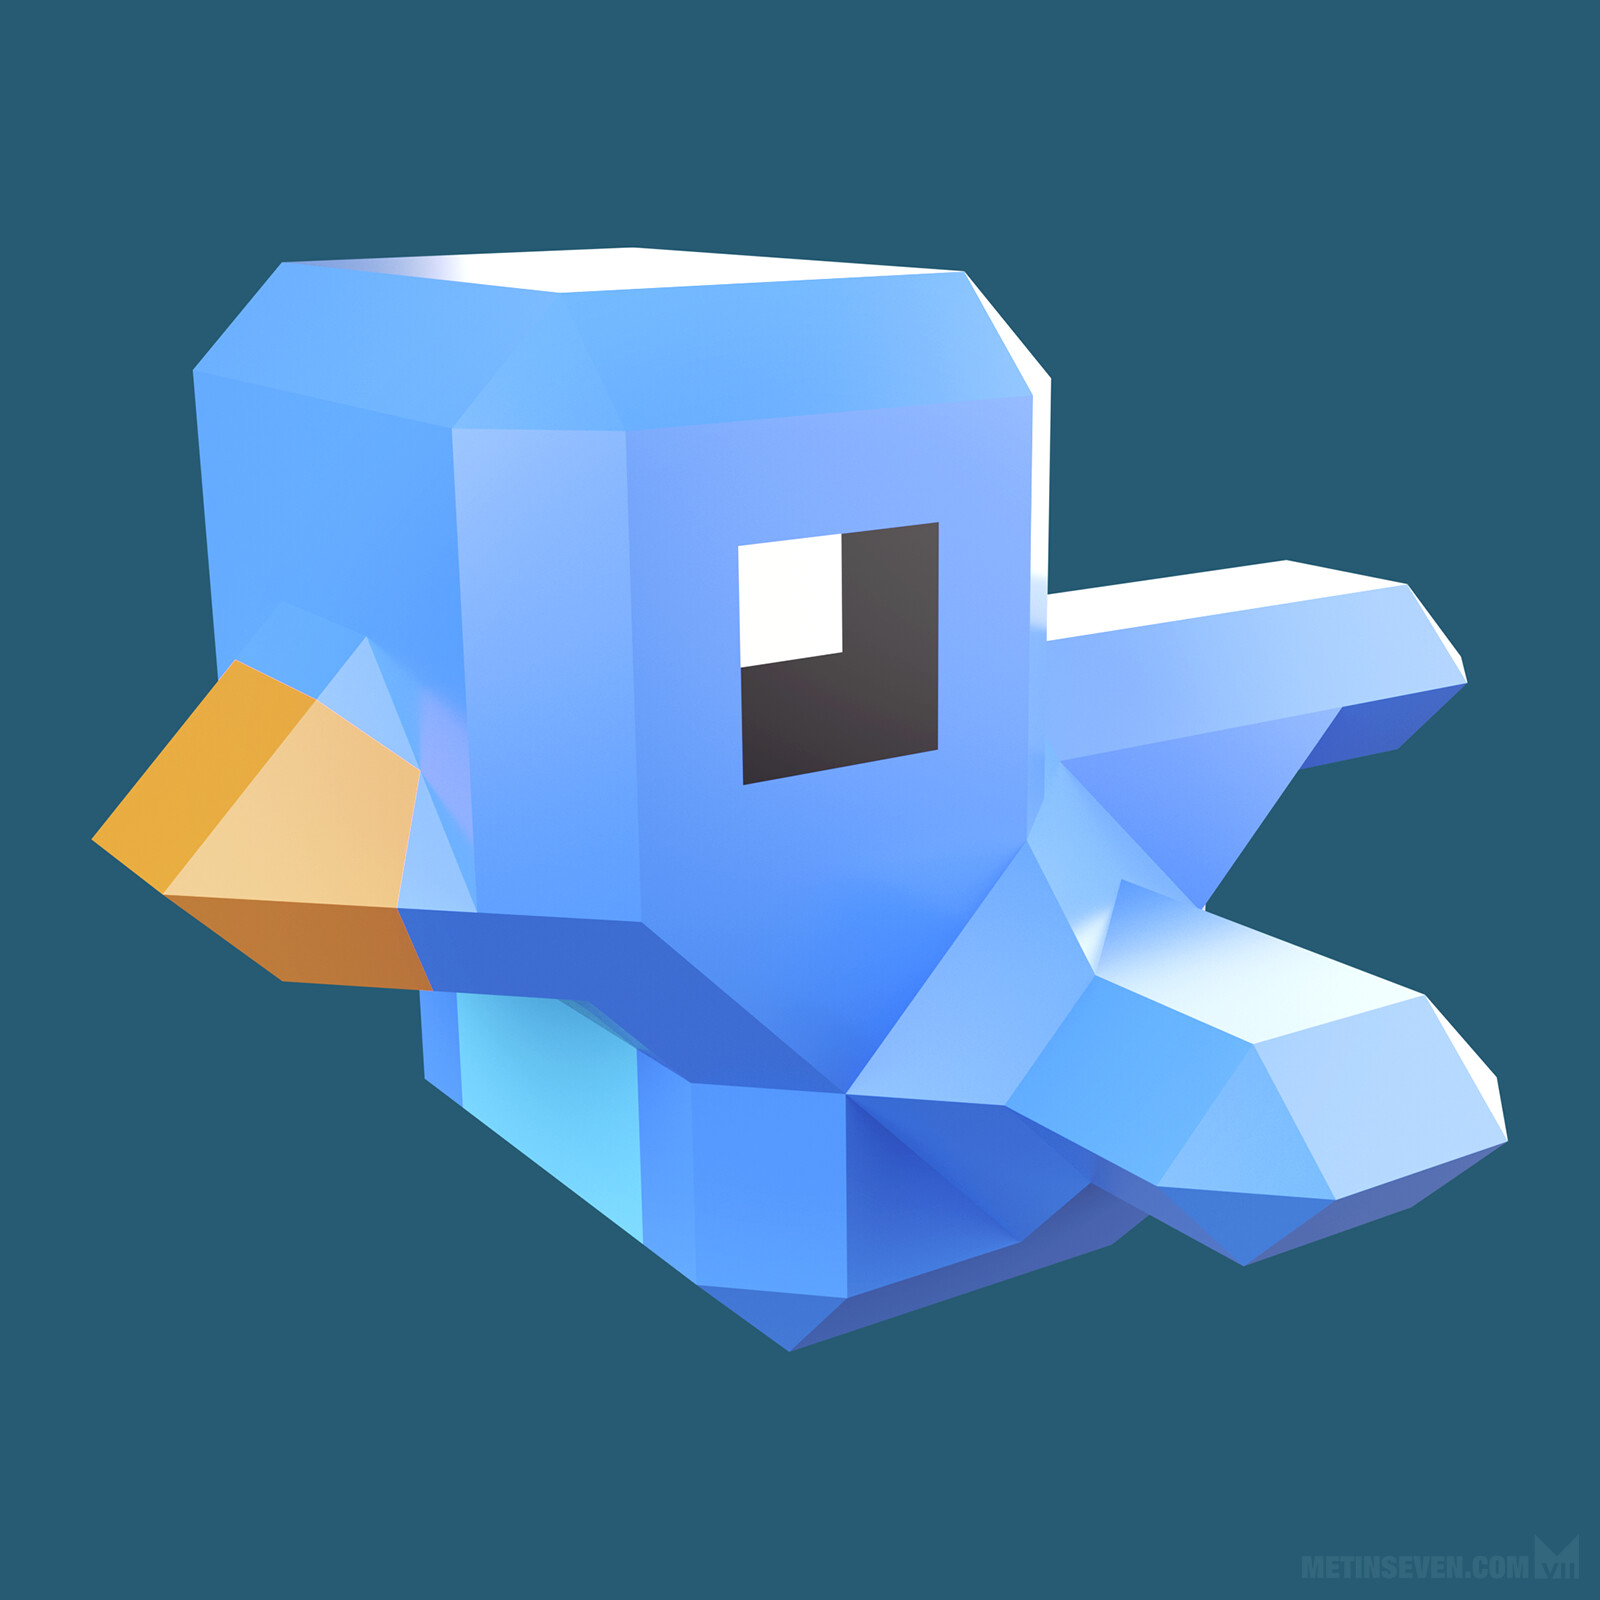 Low-polygon style Twitter bird design for an app icon